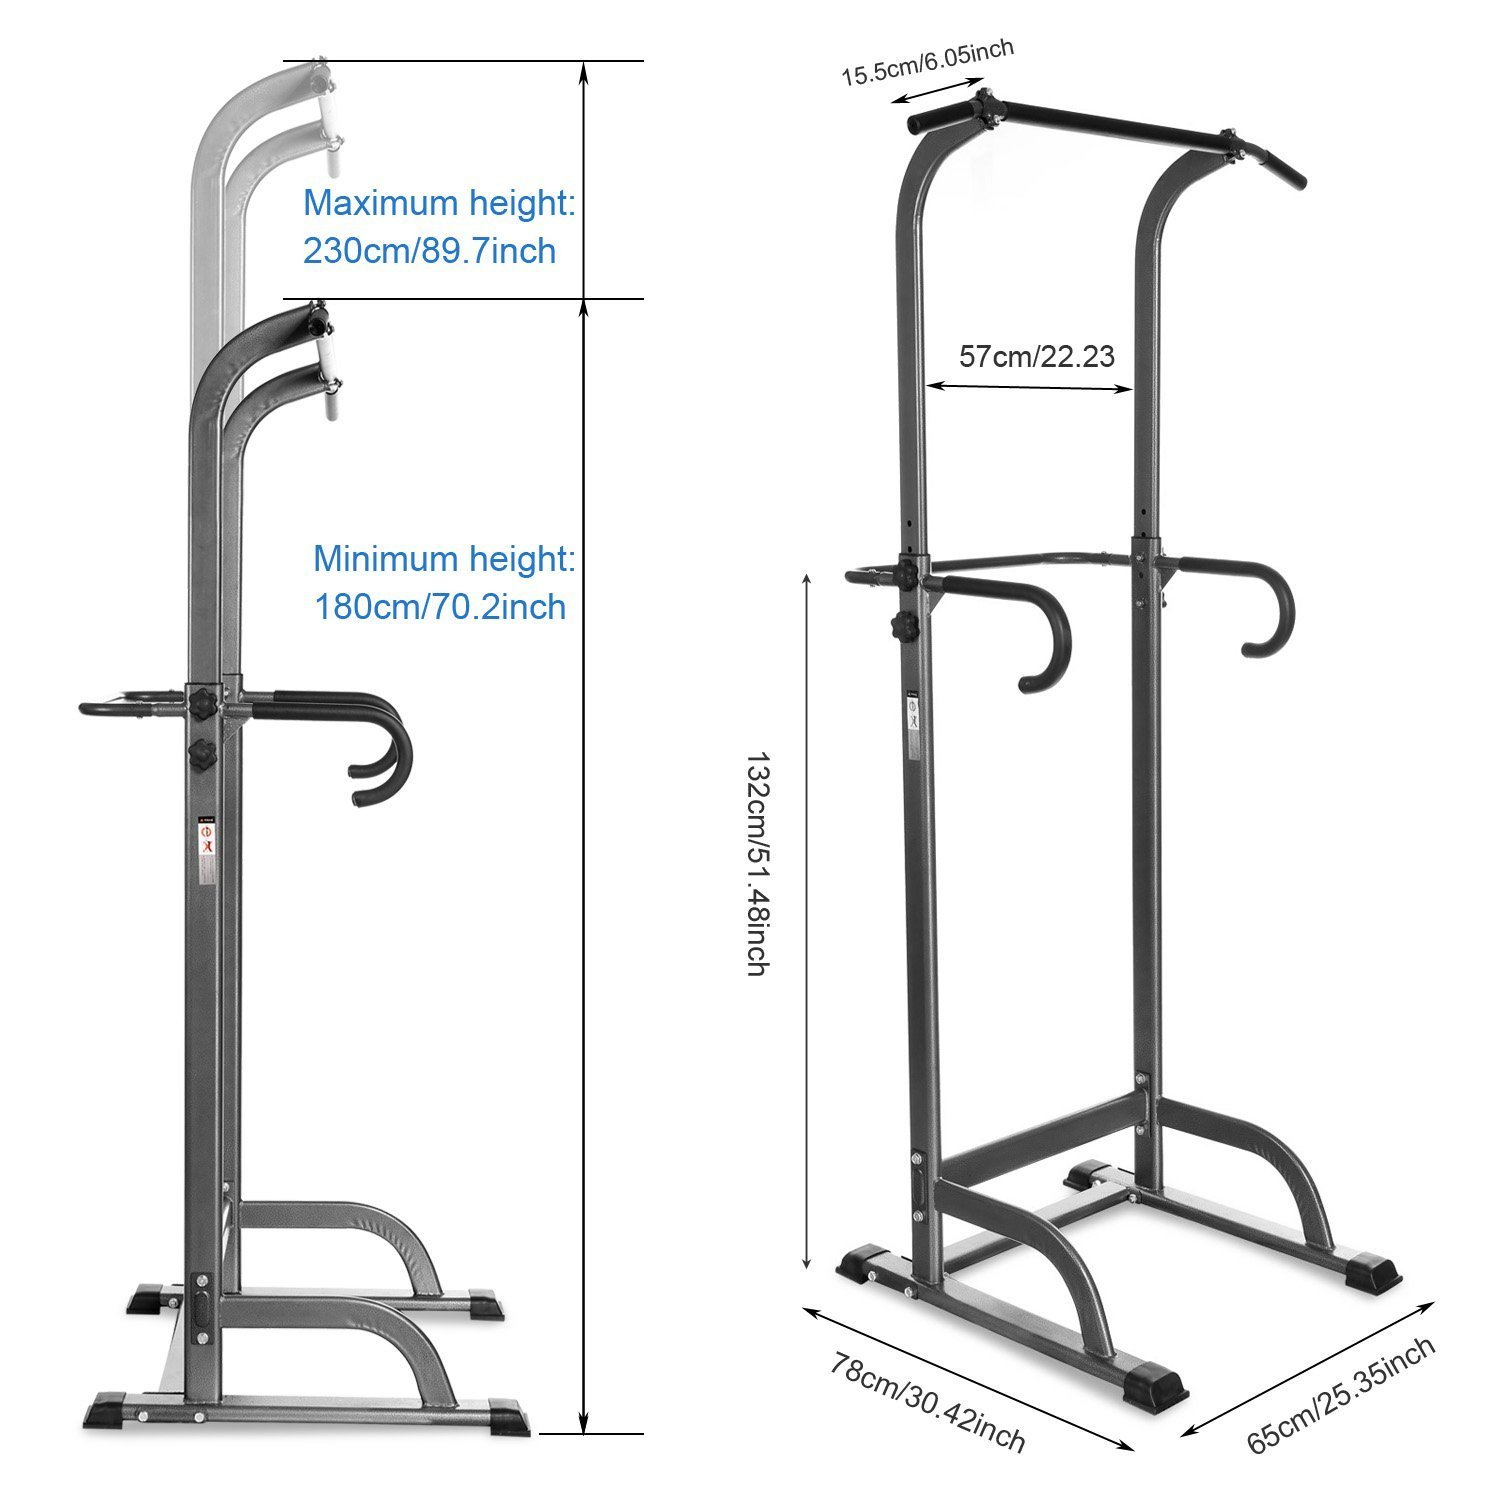 Leoneva Home Adjustable Power Tower,Chin Up Pull Up Bar Strength Power Tower, Strength Training Fitness Equipment, Multi Station Workout Dip Station for Home Gym by Leoneva (Image #5)